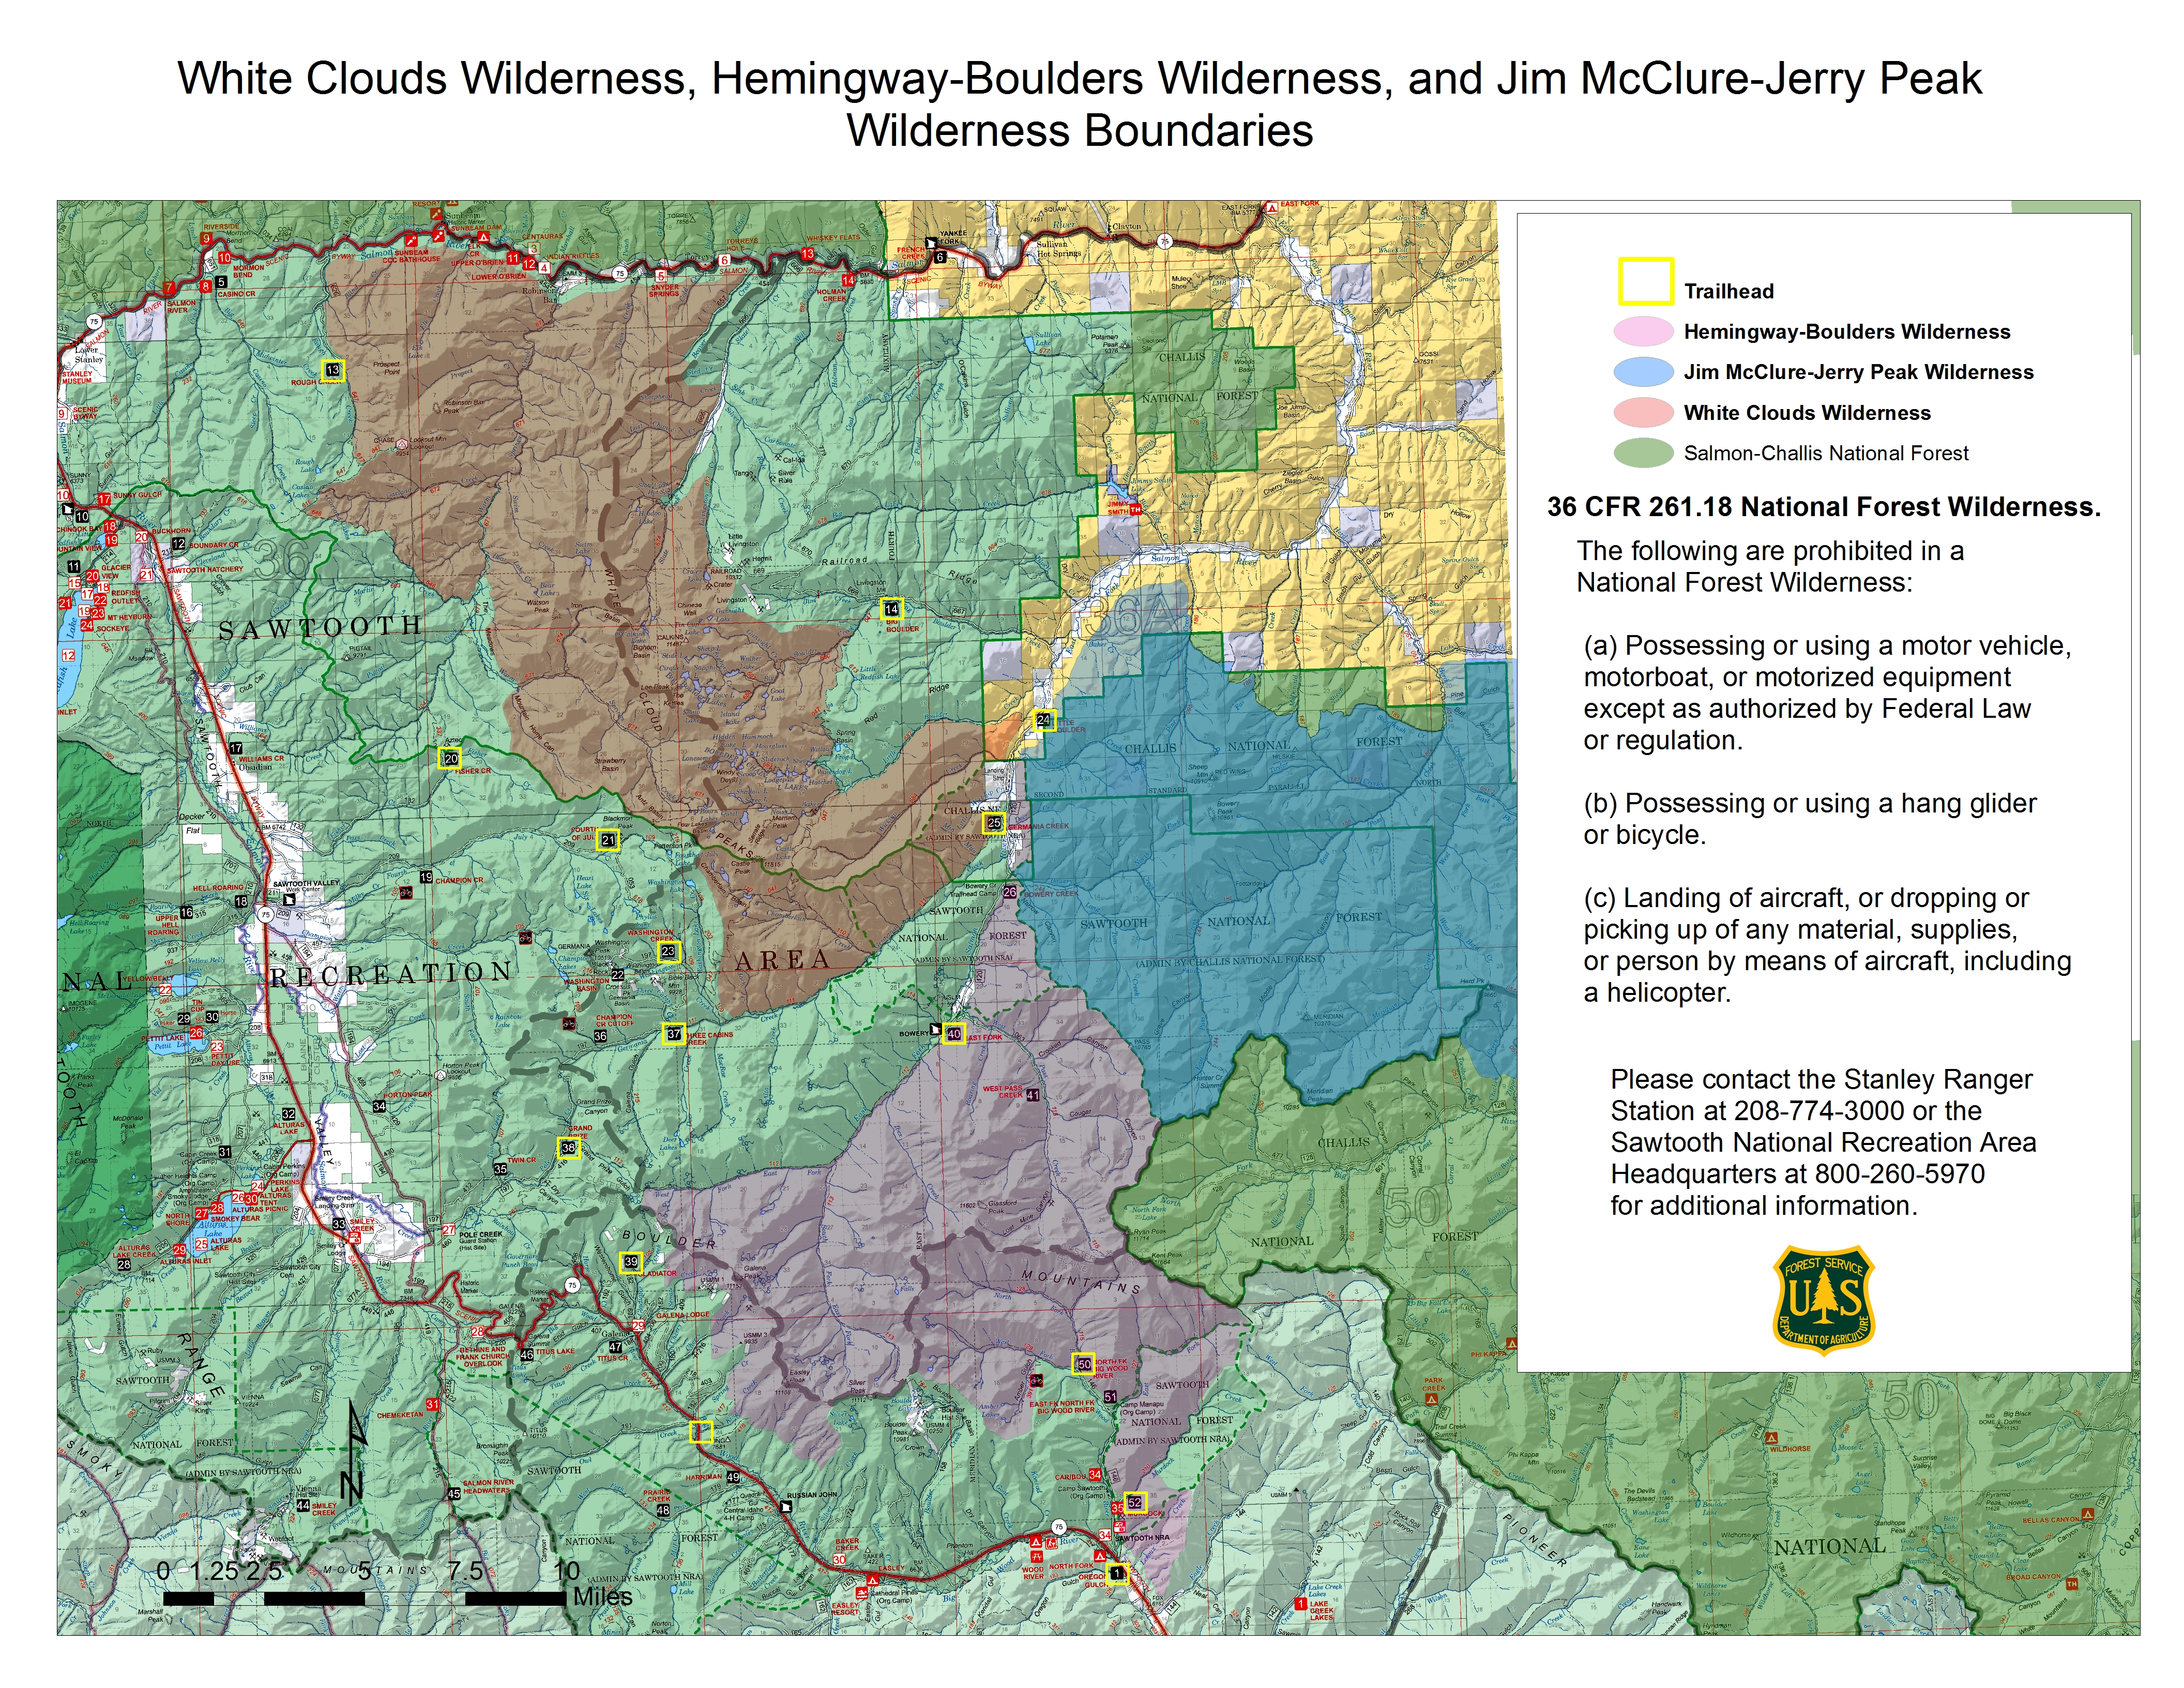 Map showing the wilderness boundarys and trailheads